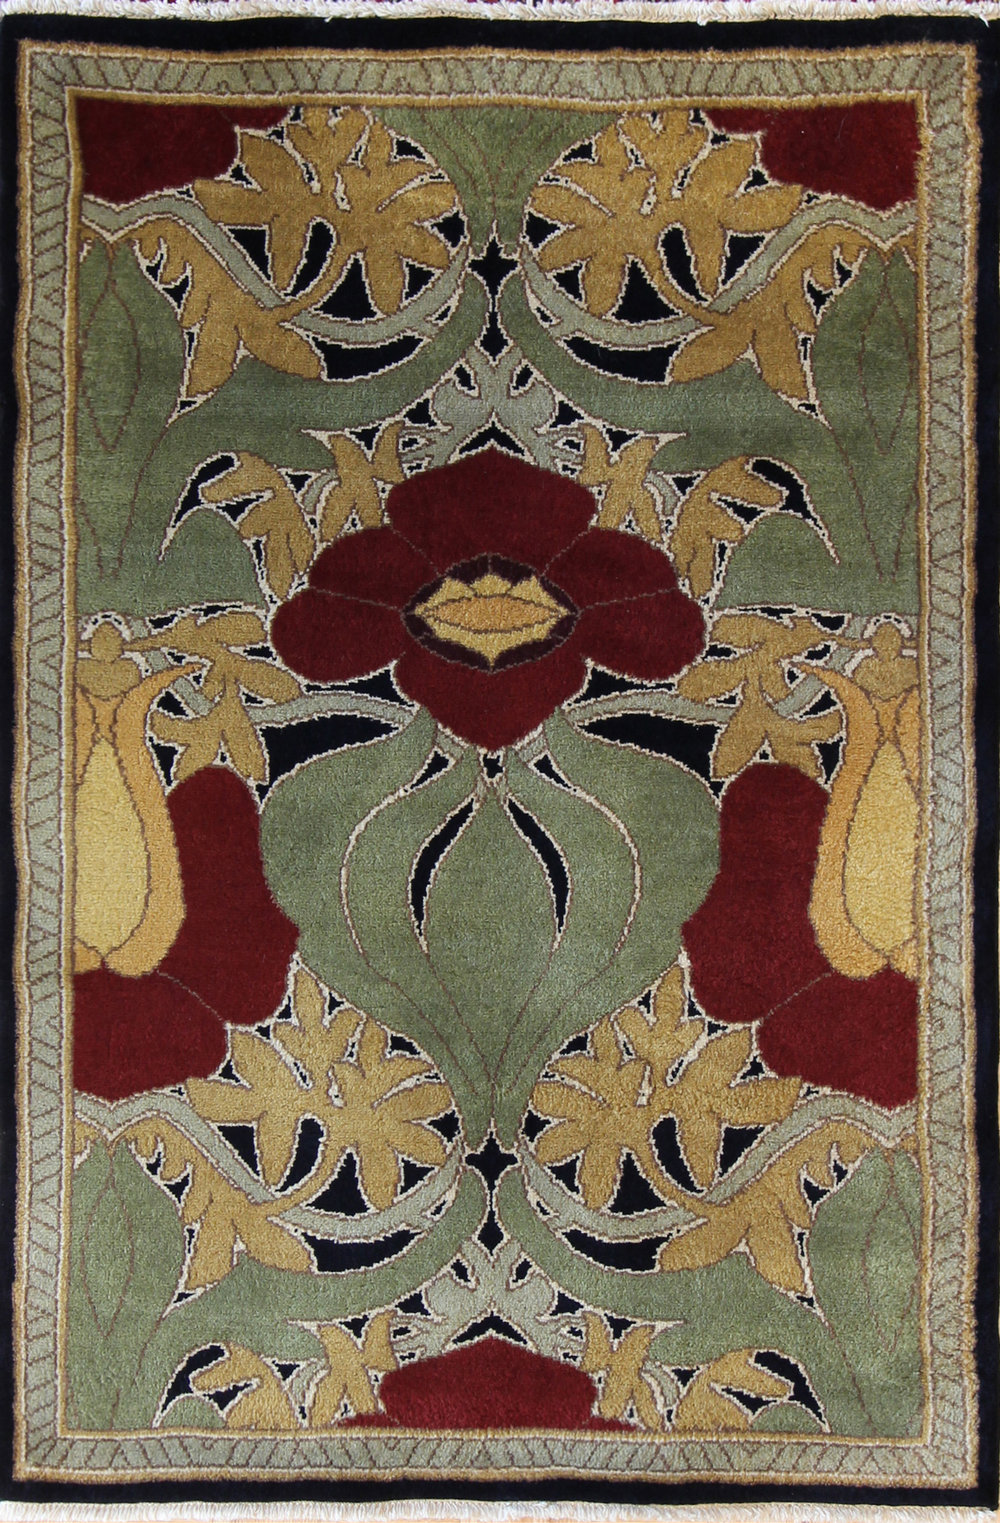 335 Donnemara, Voysey Design, India, New Zealand Wool, 4'x6'